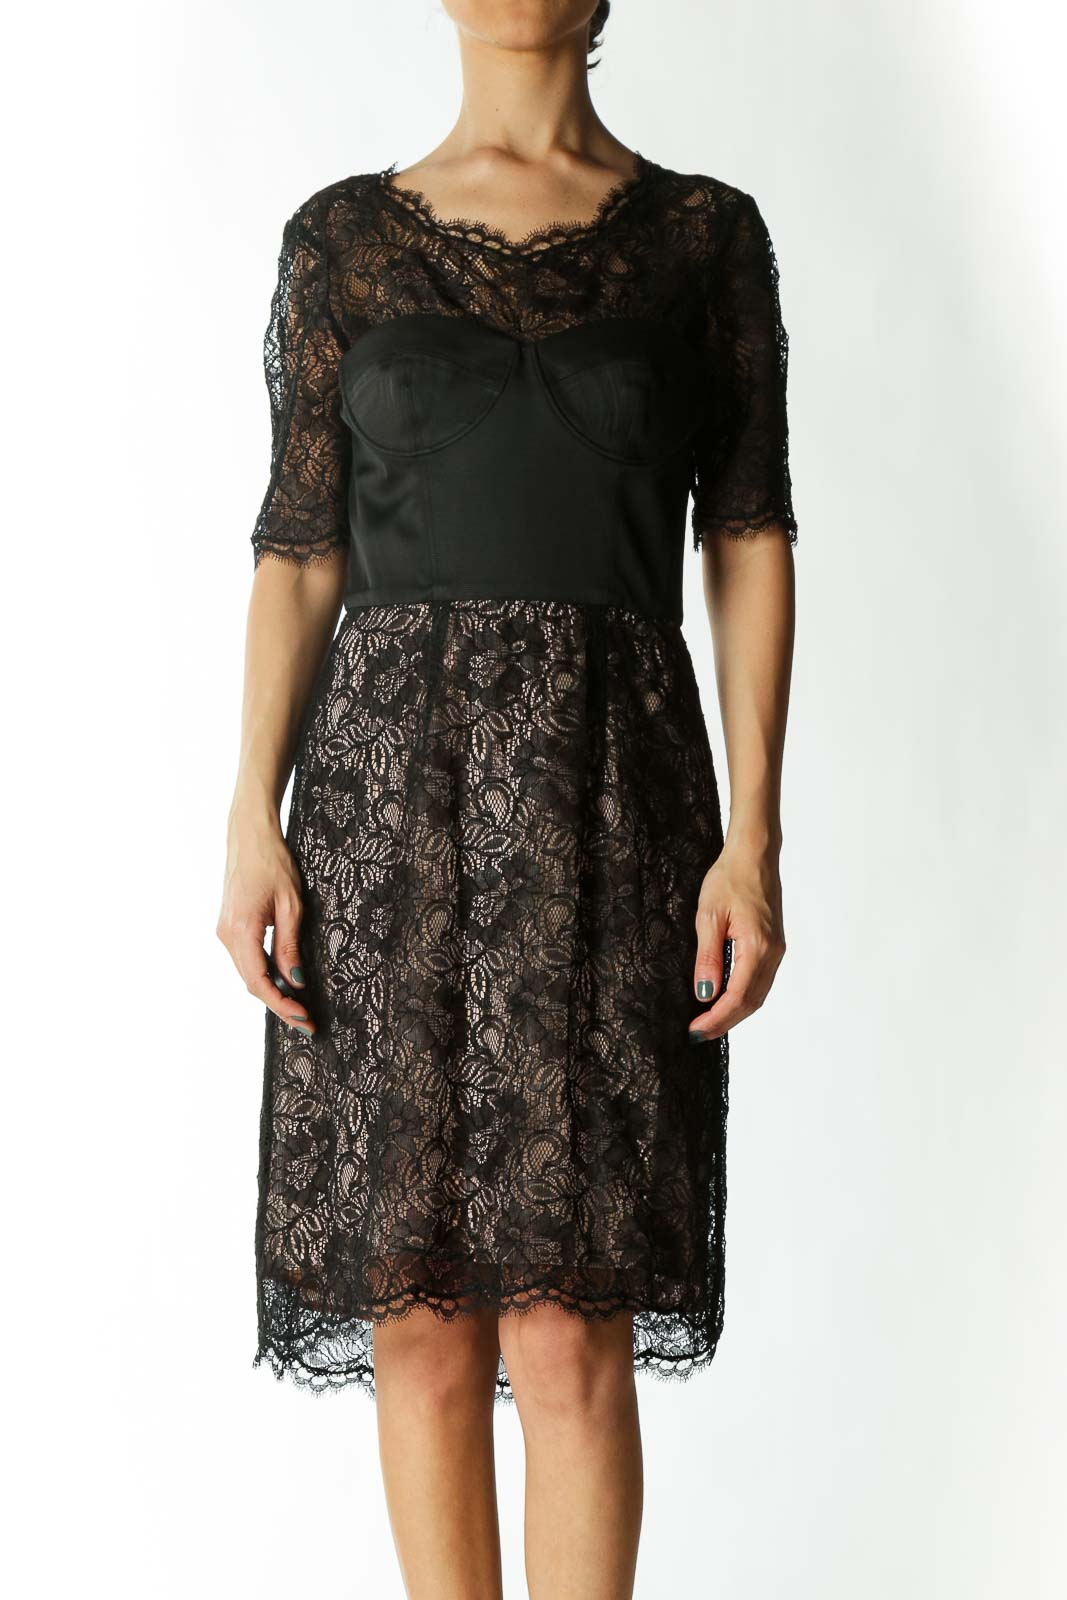 Black and Beige Dress with Corset and Lace Detail